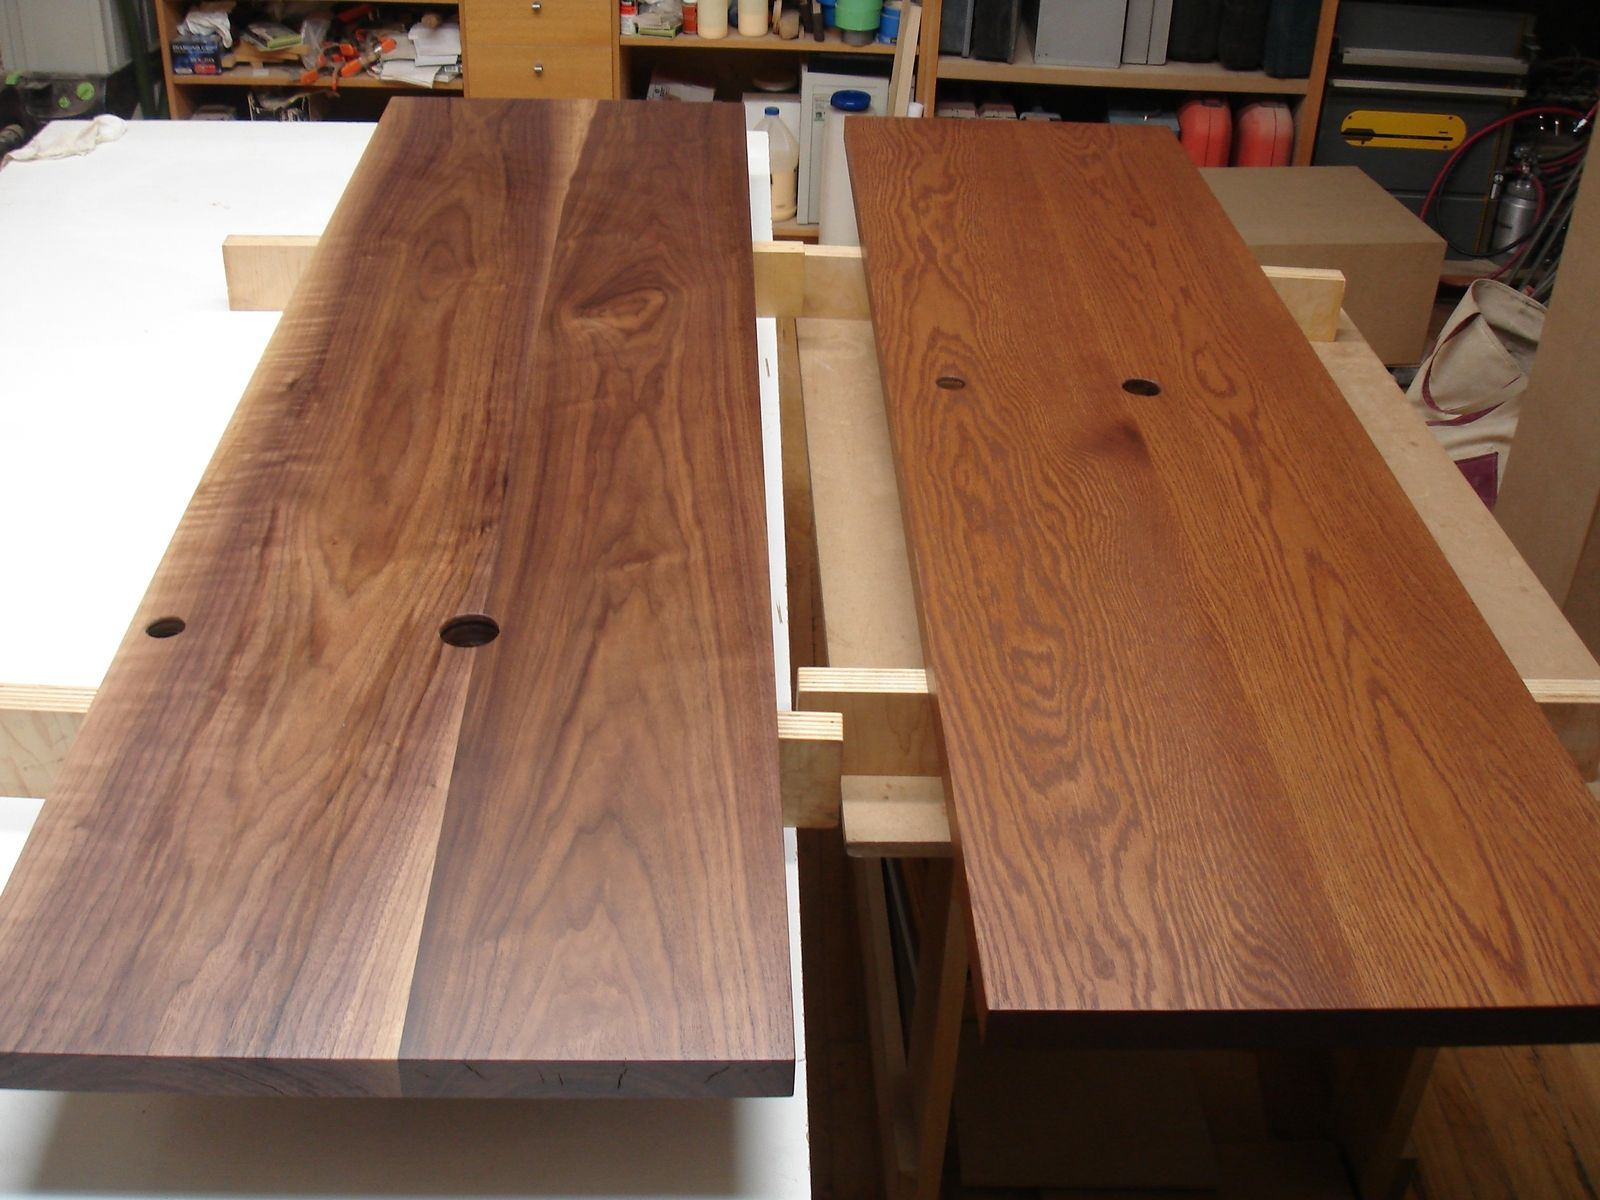 Handmade Walnut And White Oak Counter Tops By Boerum